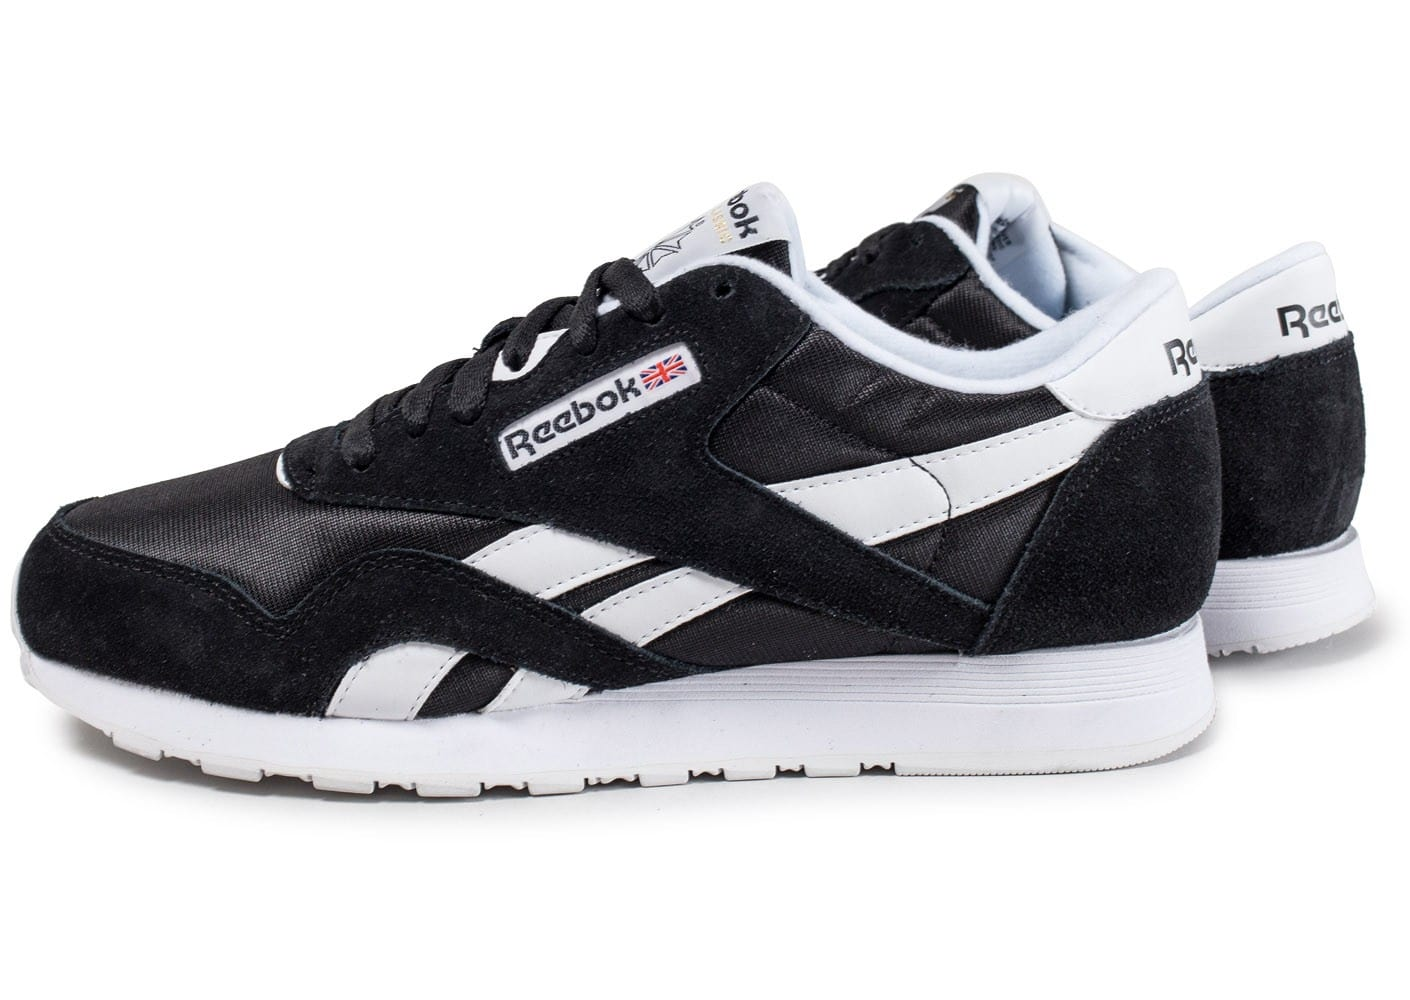 reebok classic nylon noire et blanche chaussures baskets. Black Bedroom Furniture Sets. Home Design Ideas